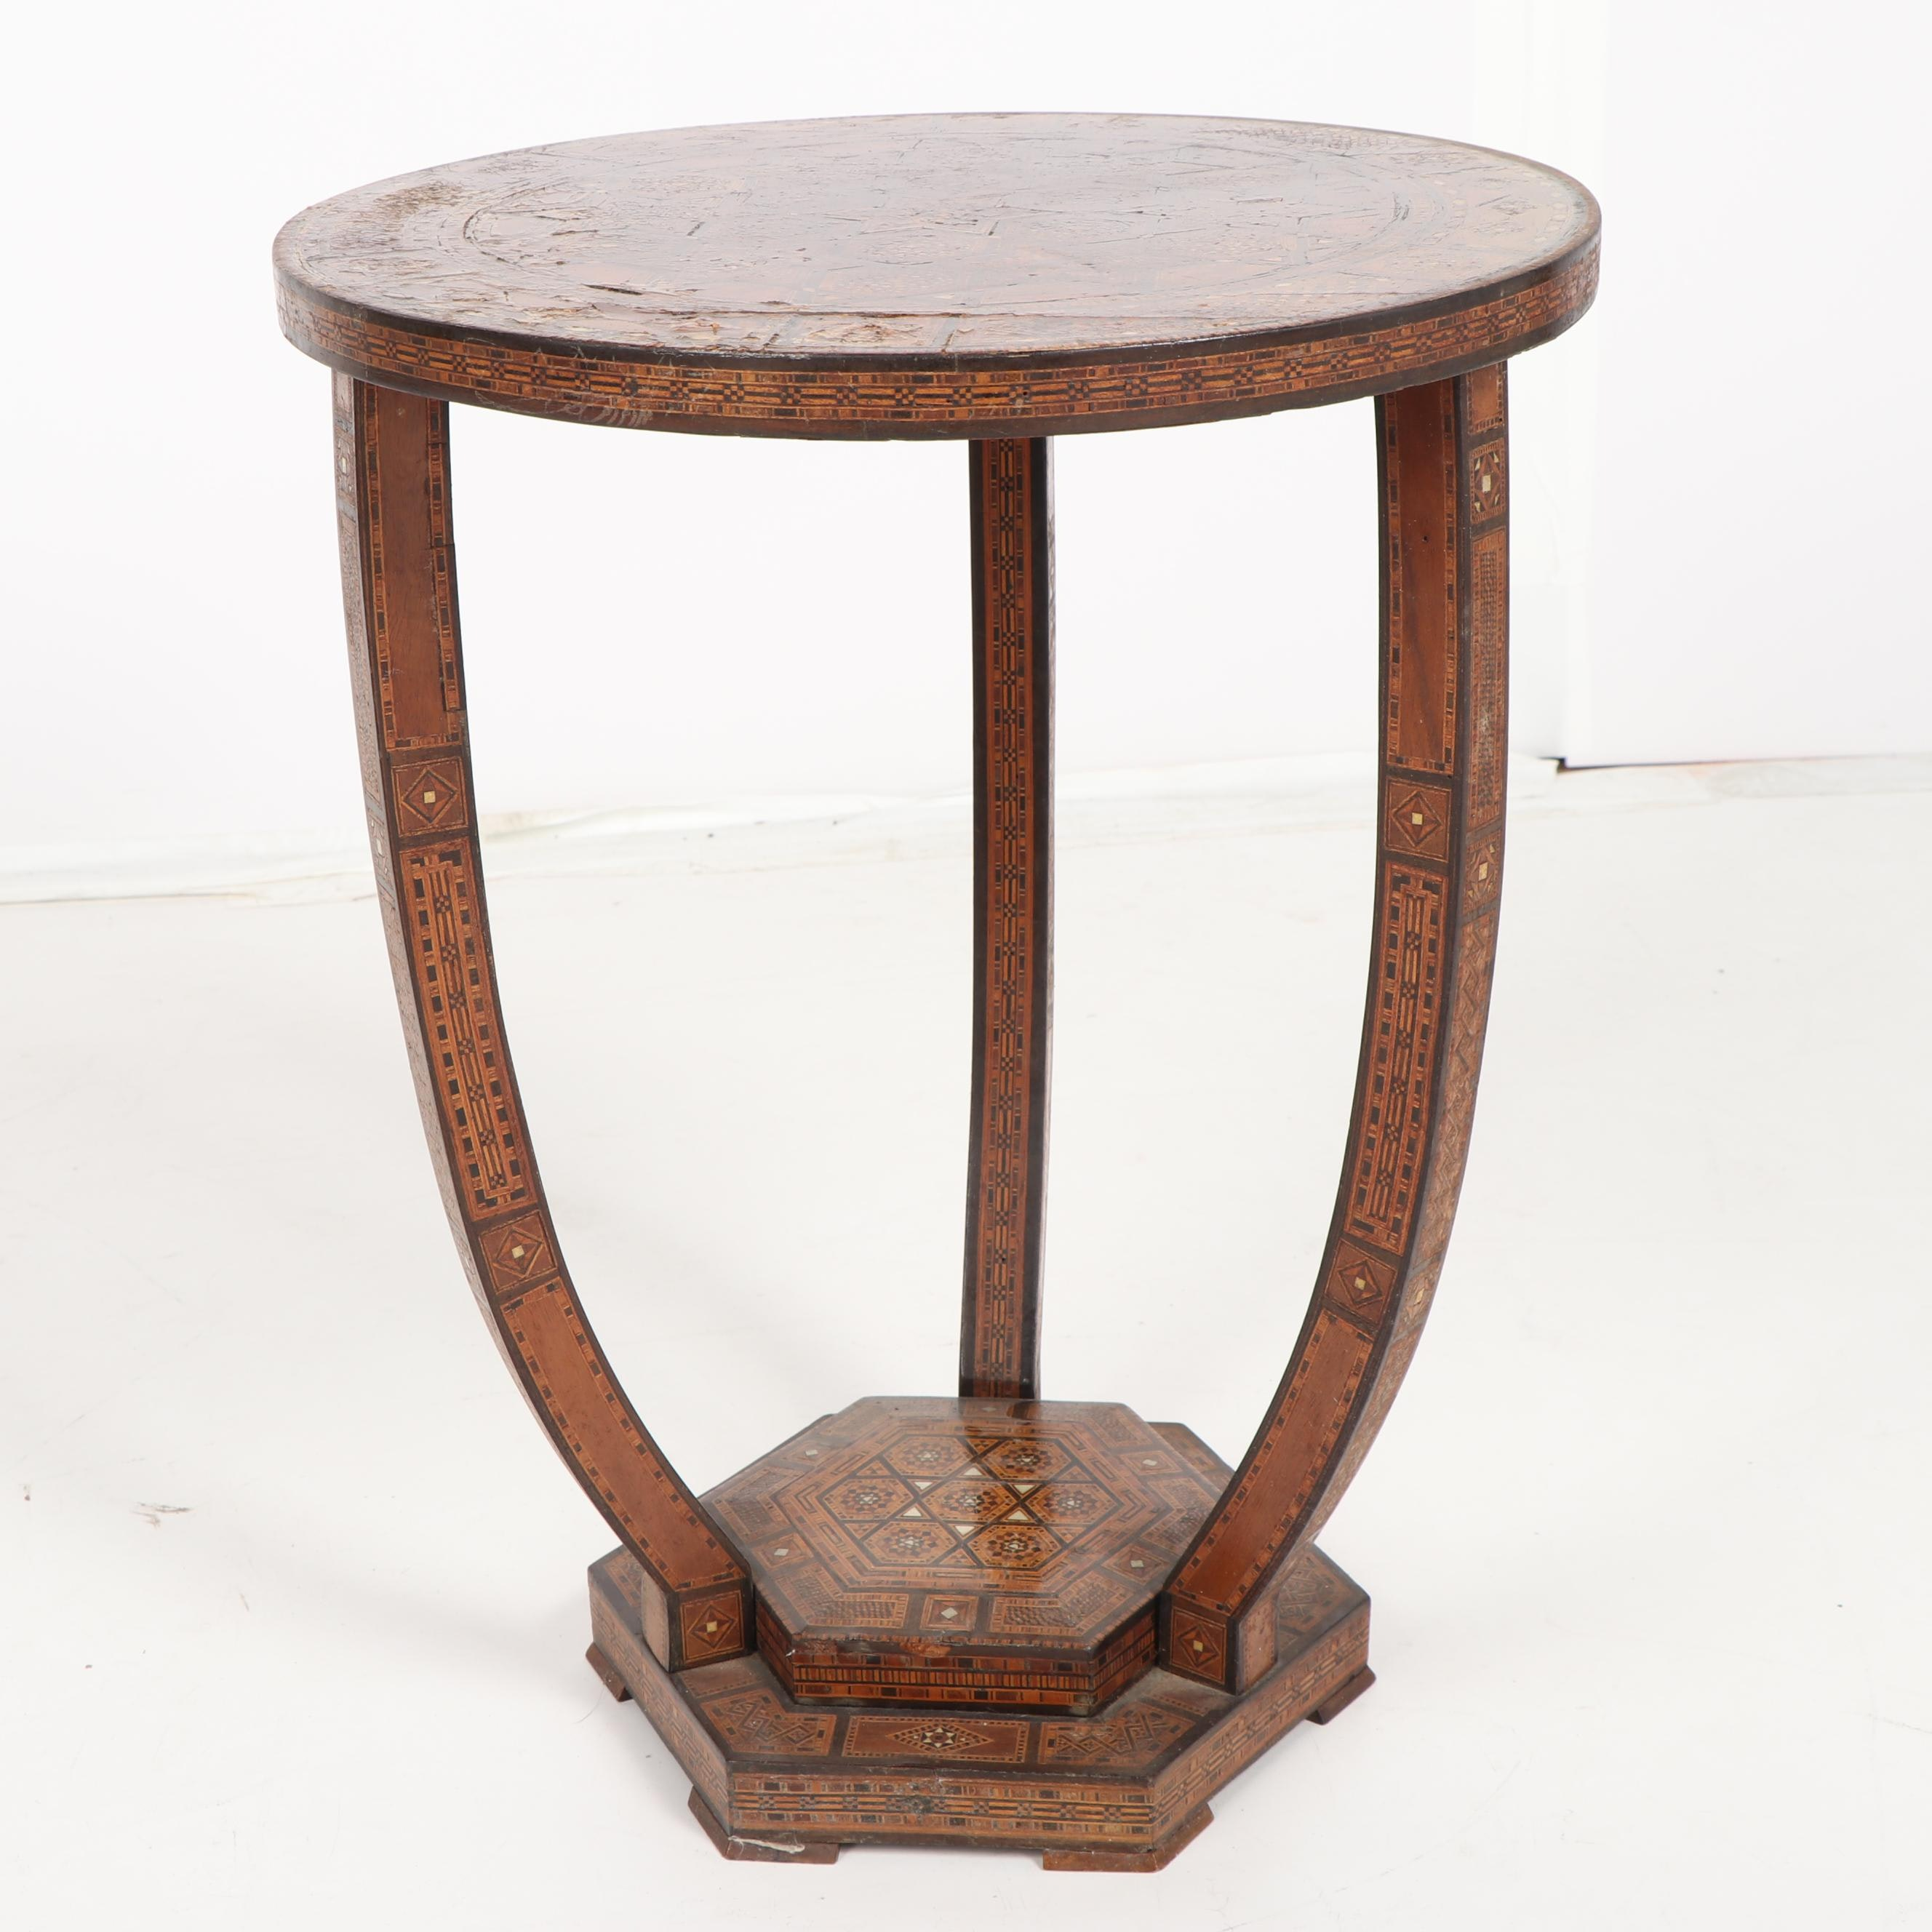 Moroccan Style Wood Occasional Table with Mother of Pearl Inlay, 20th Century